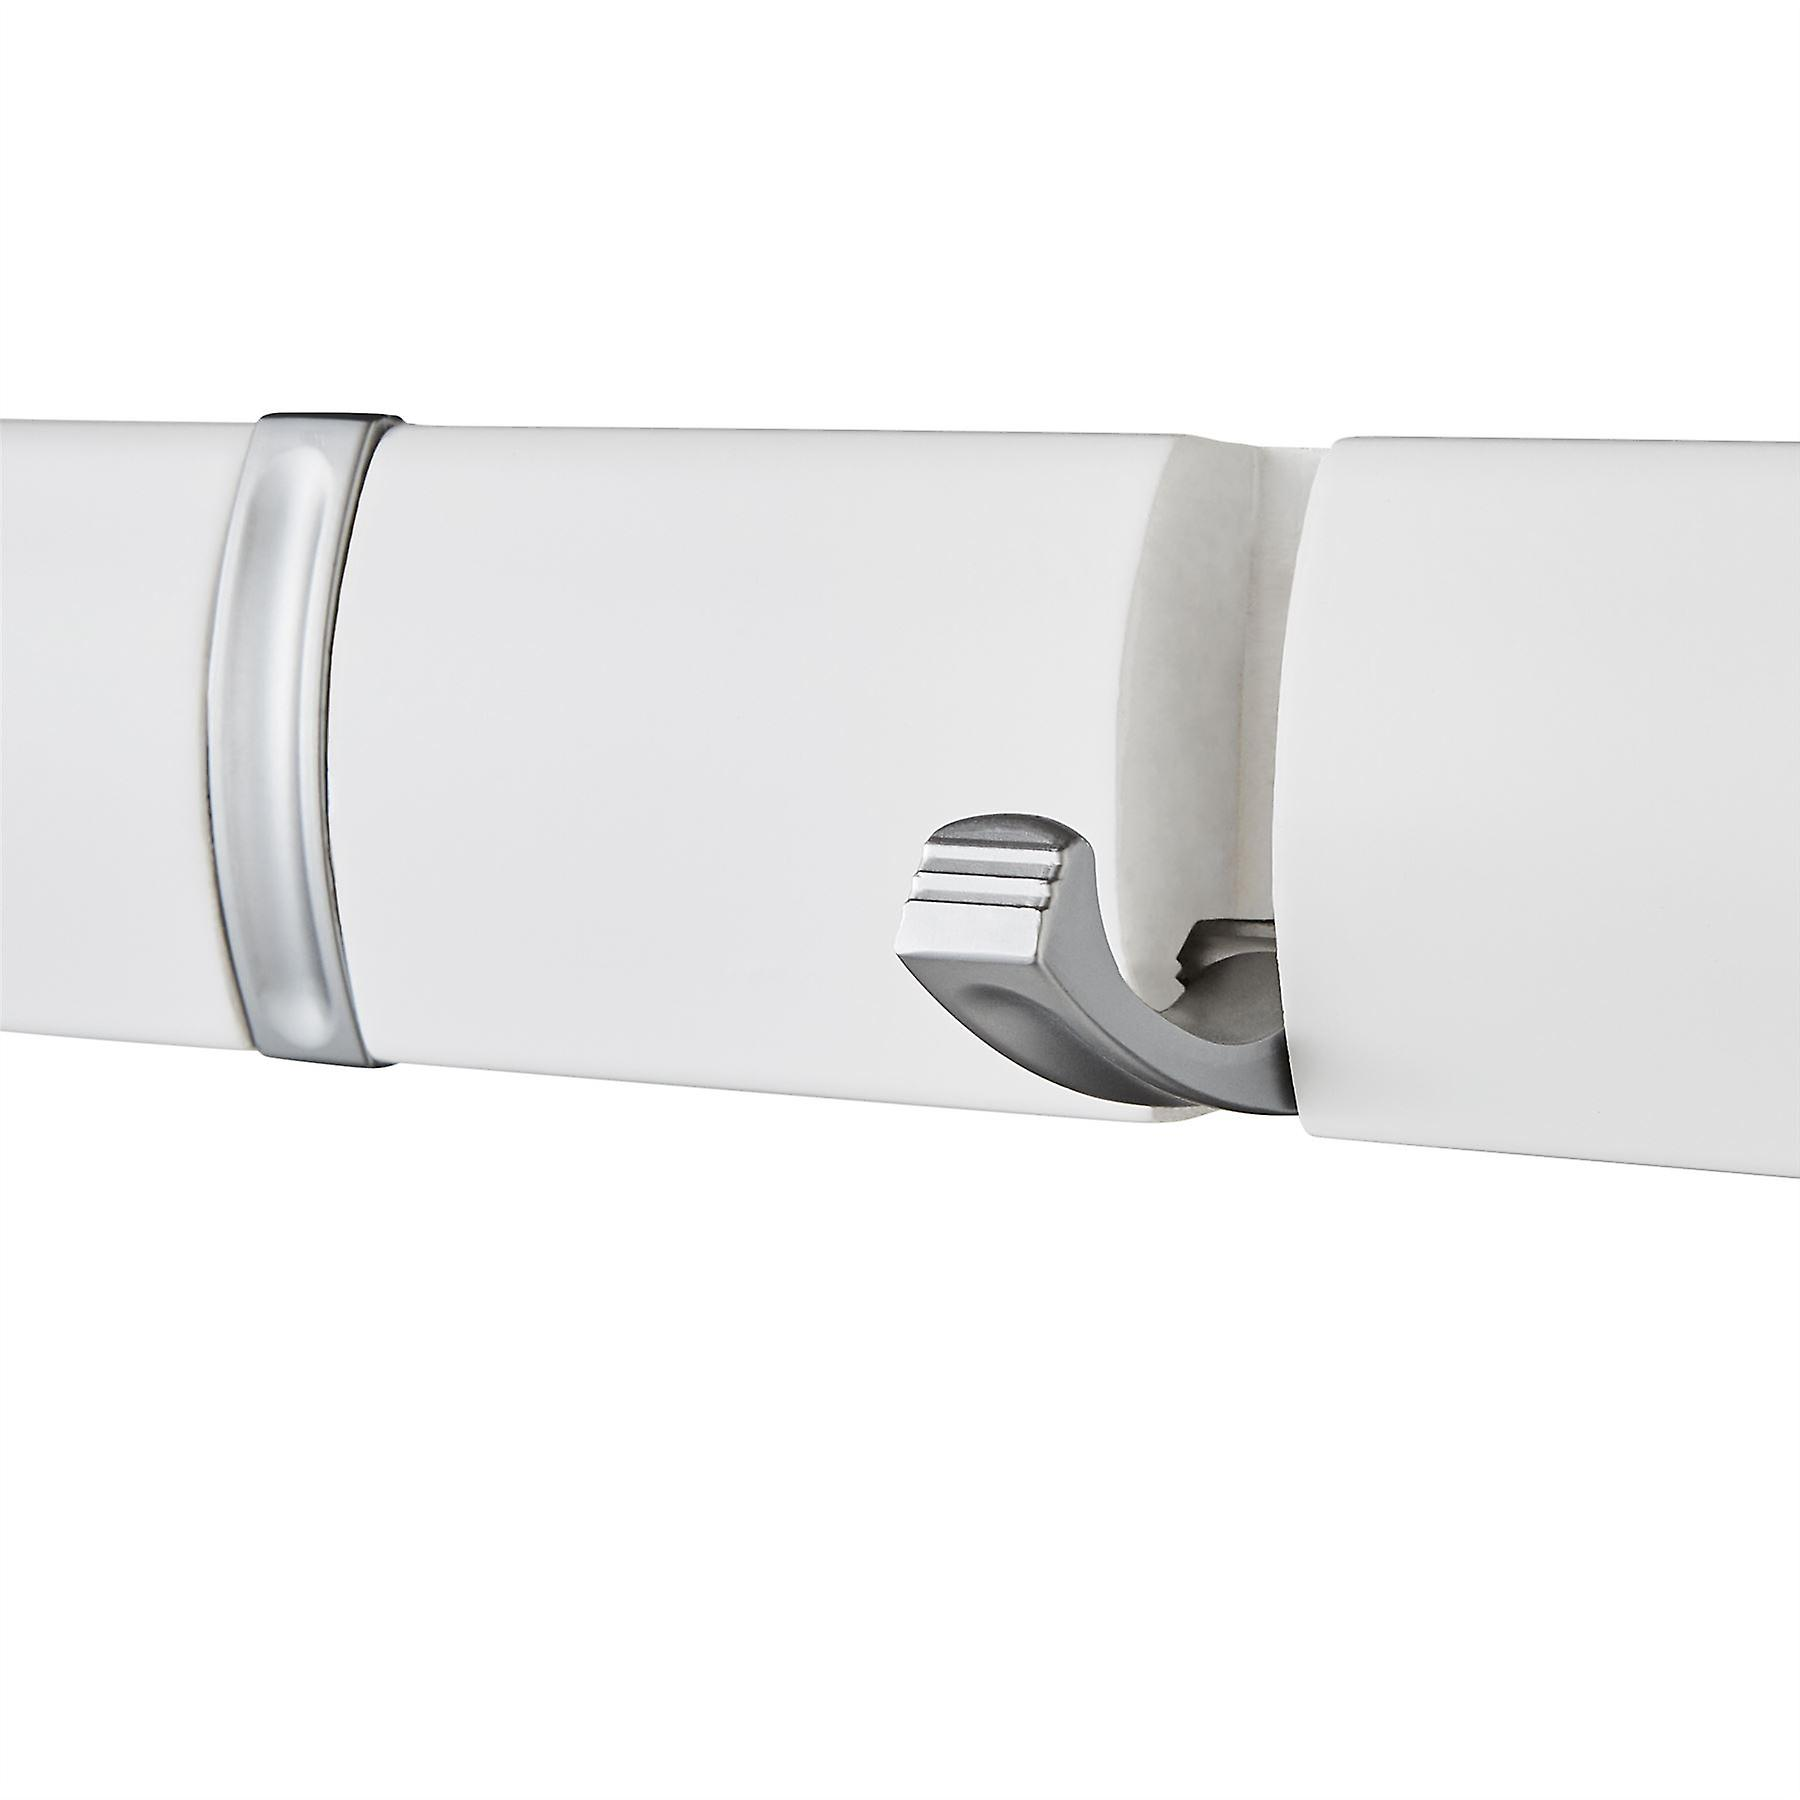 5 Door Hooks In Satin Chrome On Natural White Mountable Board